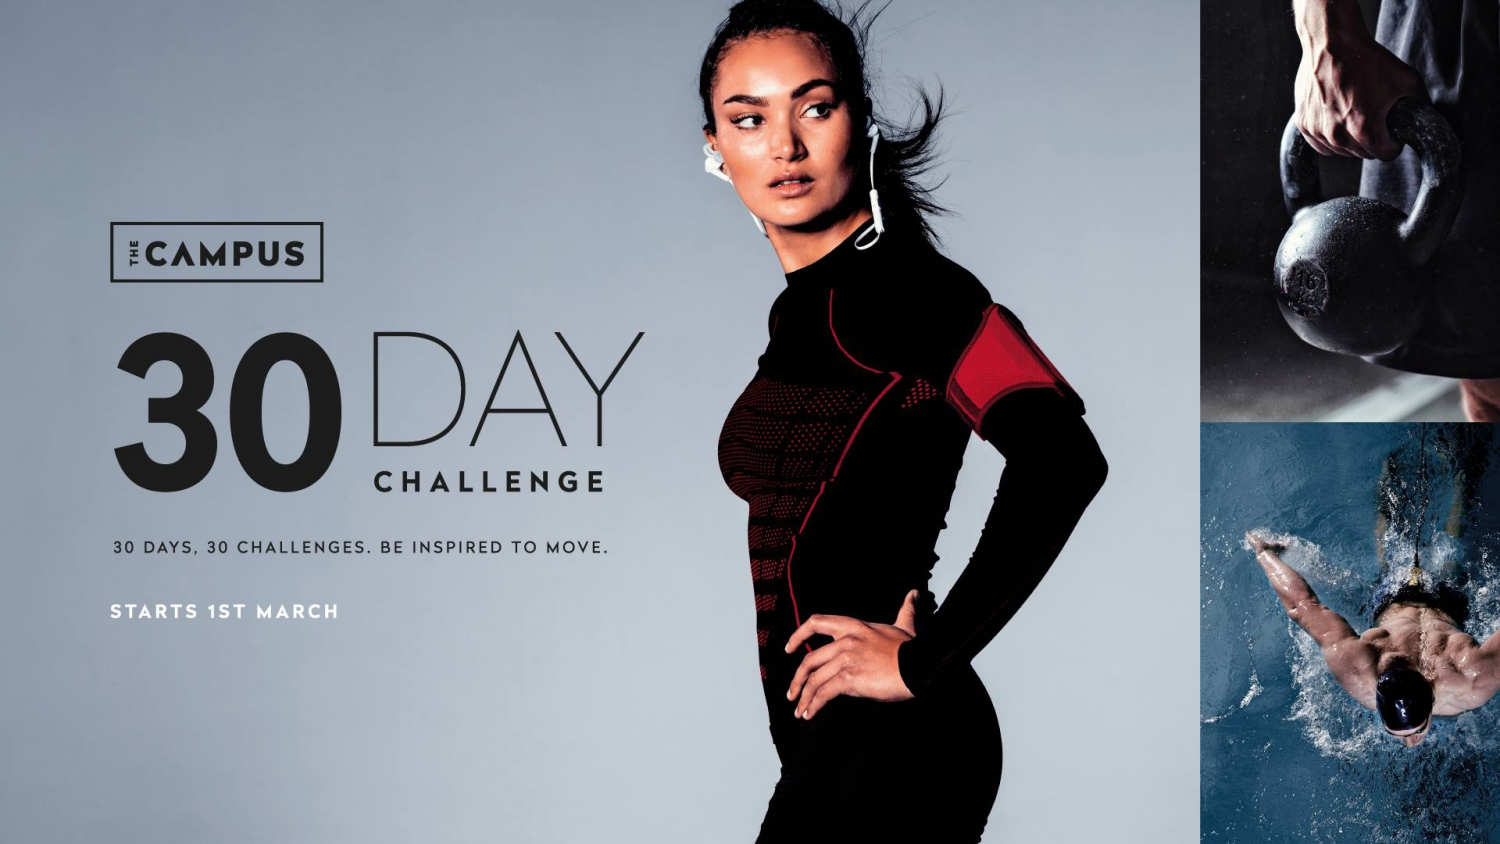 30 Day Challenge at The Campus